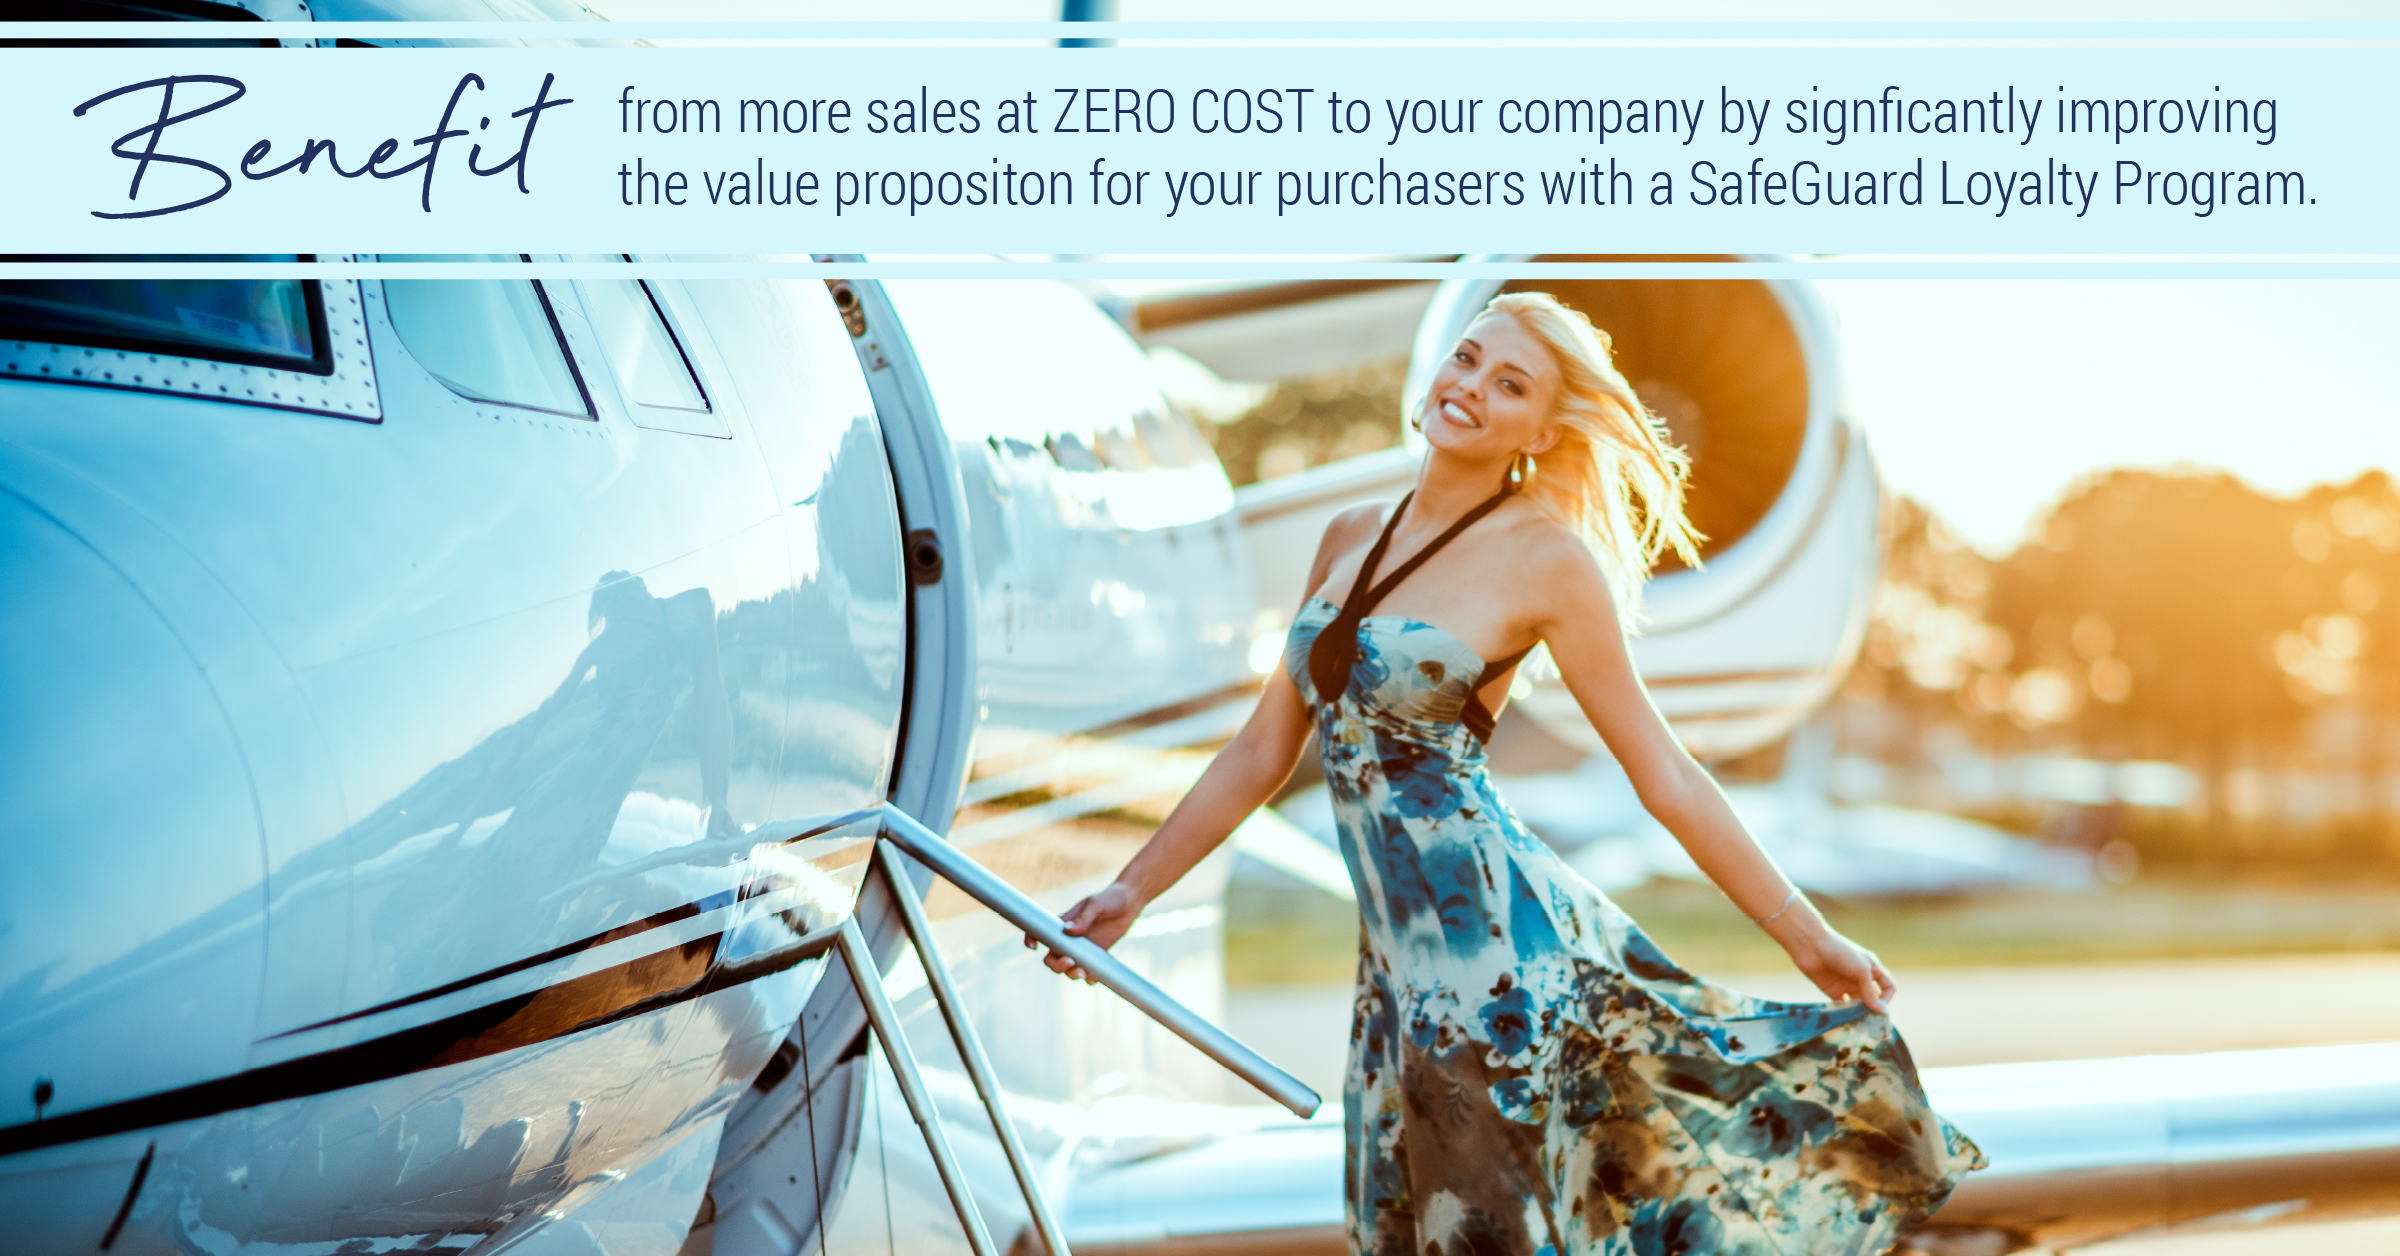 SafeGuard Loyalty Program Now Available For Private Jets & Jet Memberships